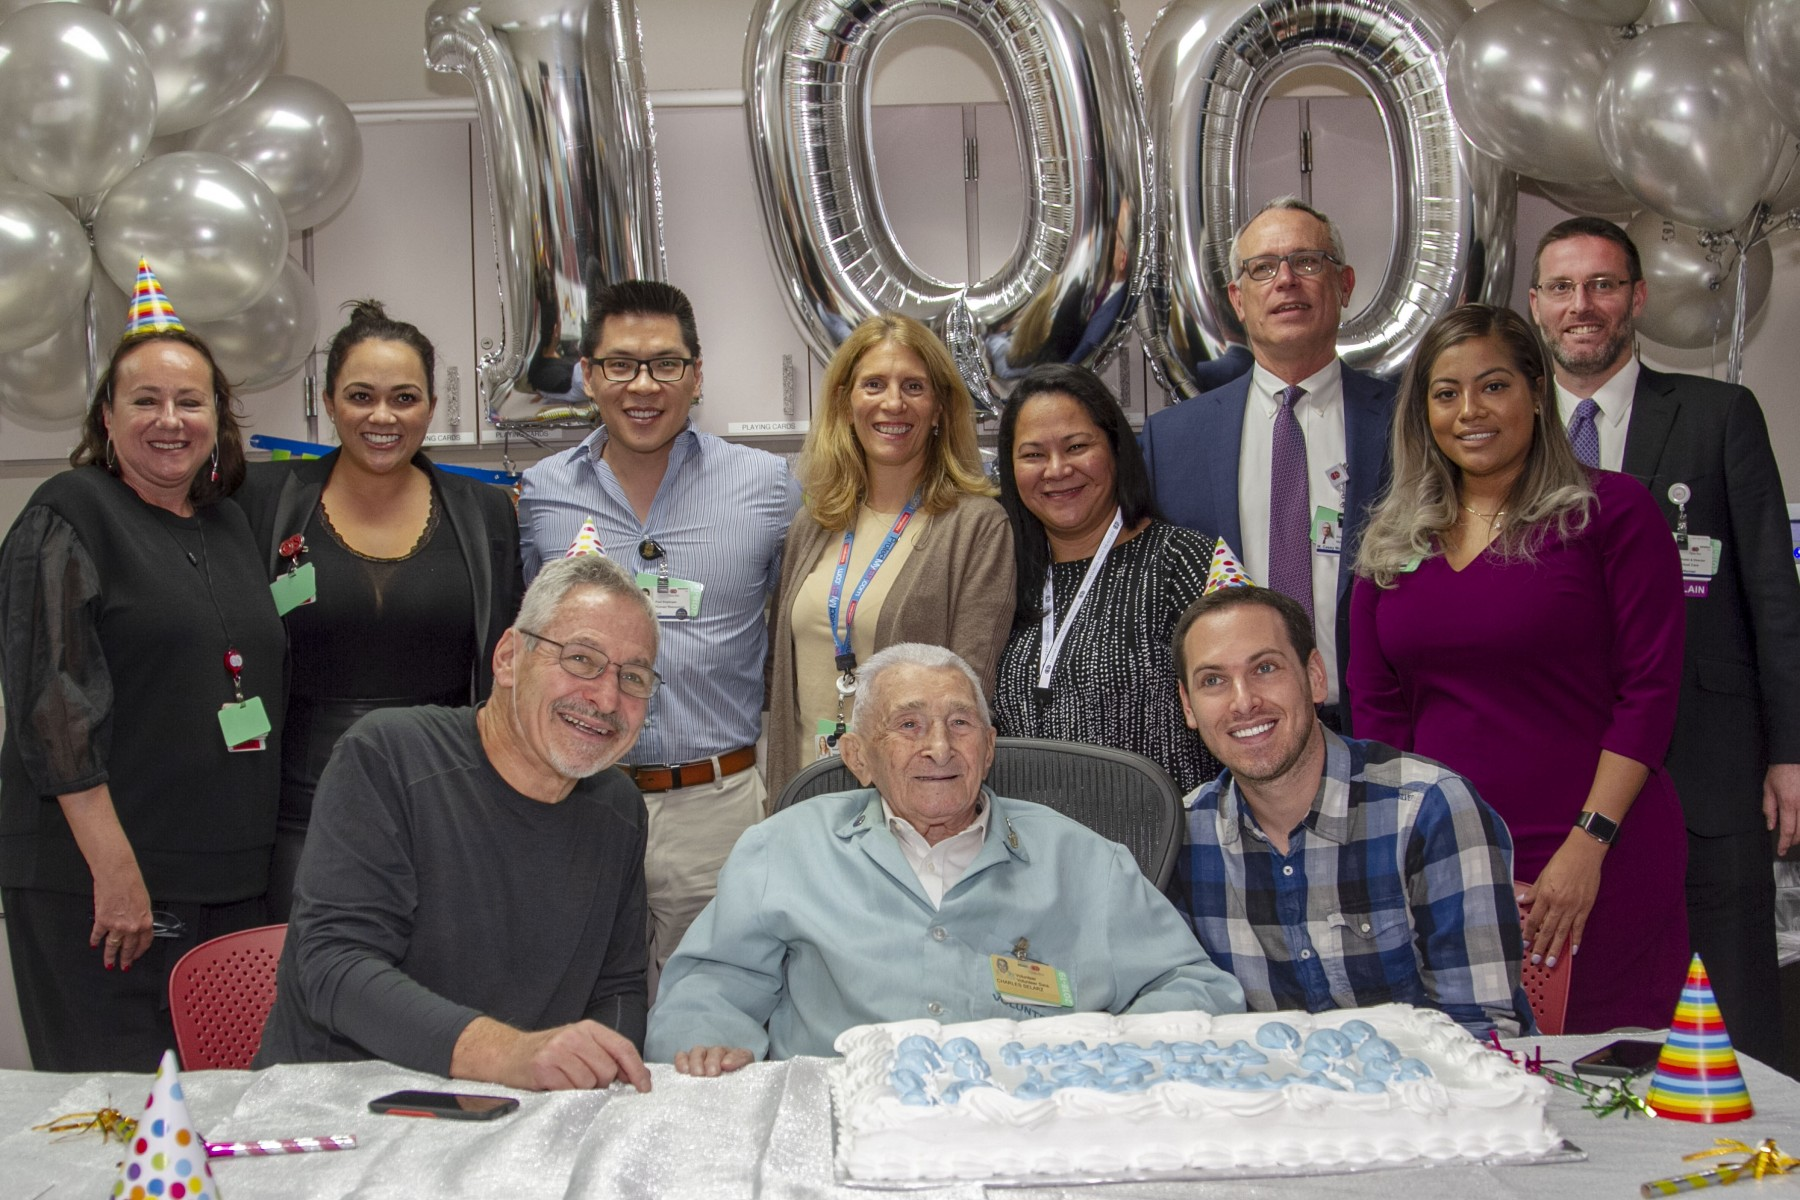 Volunteer Charles Selarz celebrates his 100th birthday with relatives and Cedars-Sinai staff members. Photo by Cedars-Sinai.